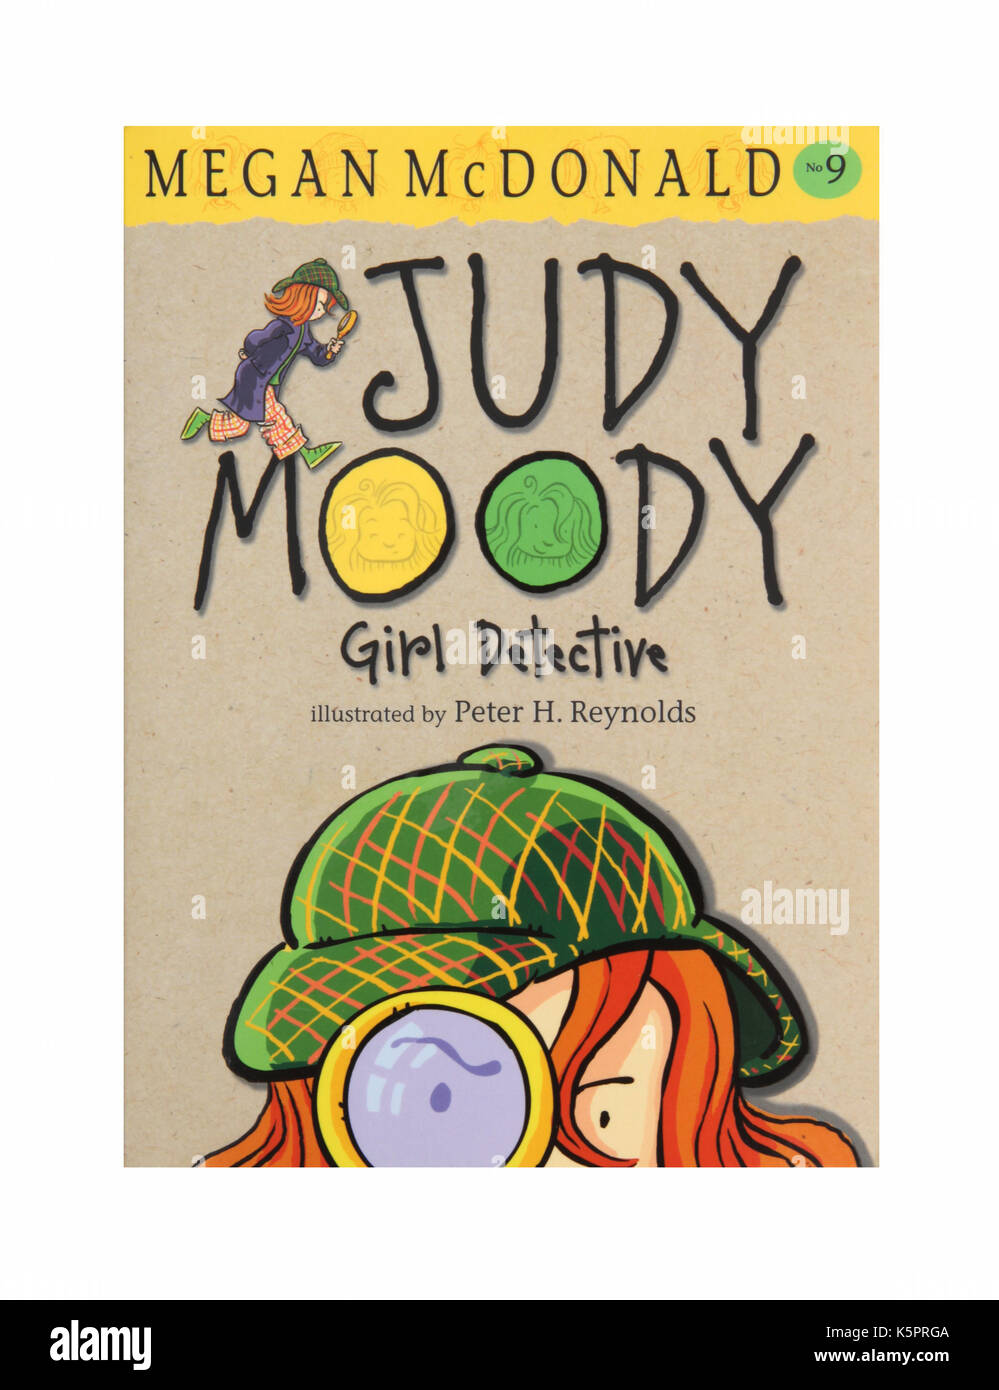 The book Judy Moody Girl Detective by Megan McDonald - Stock Image